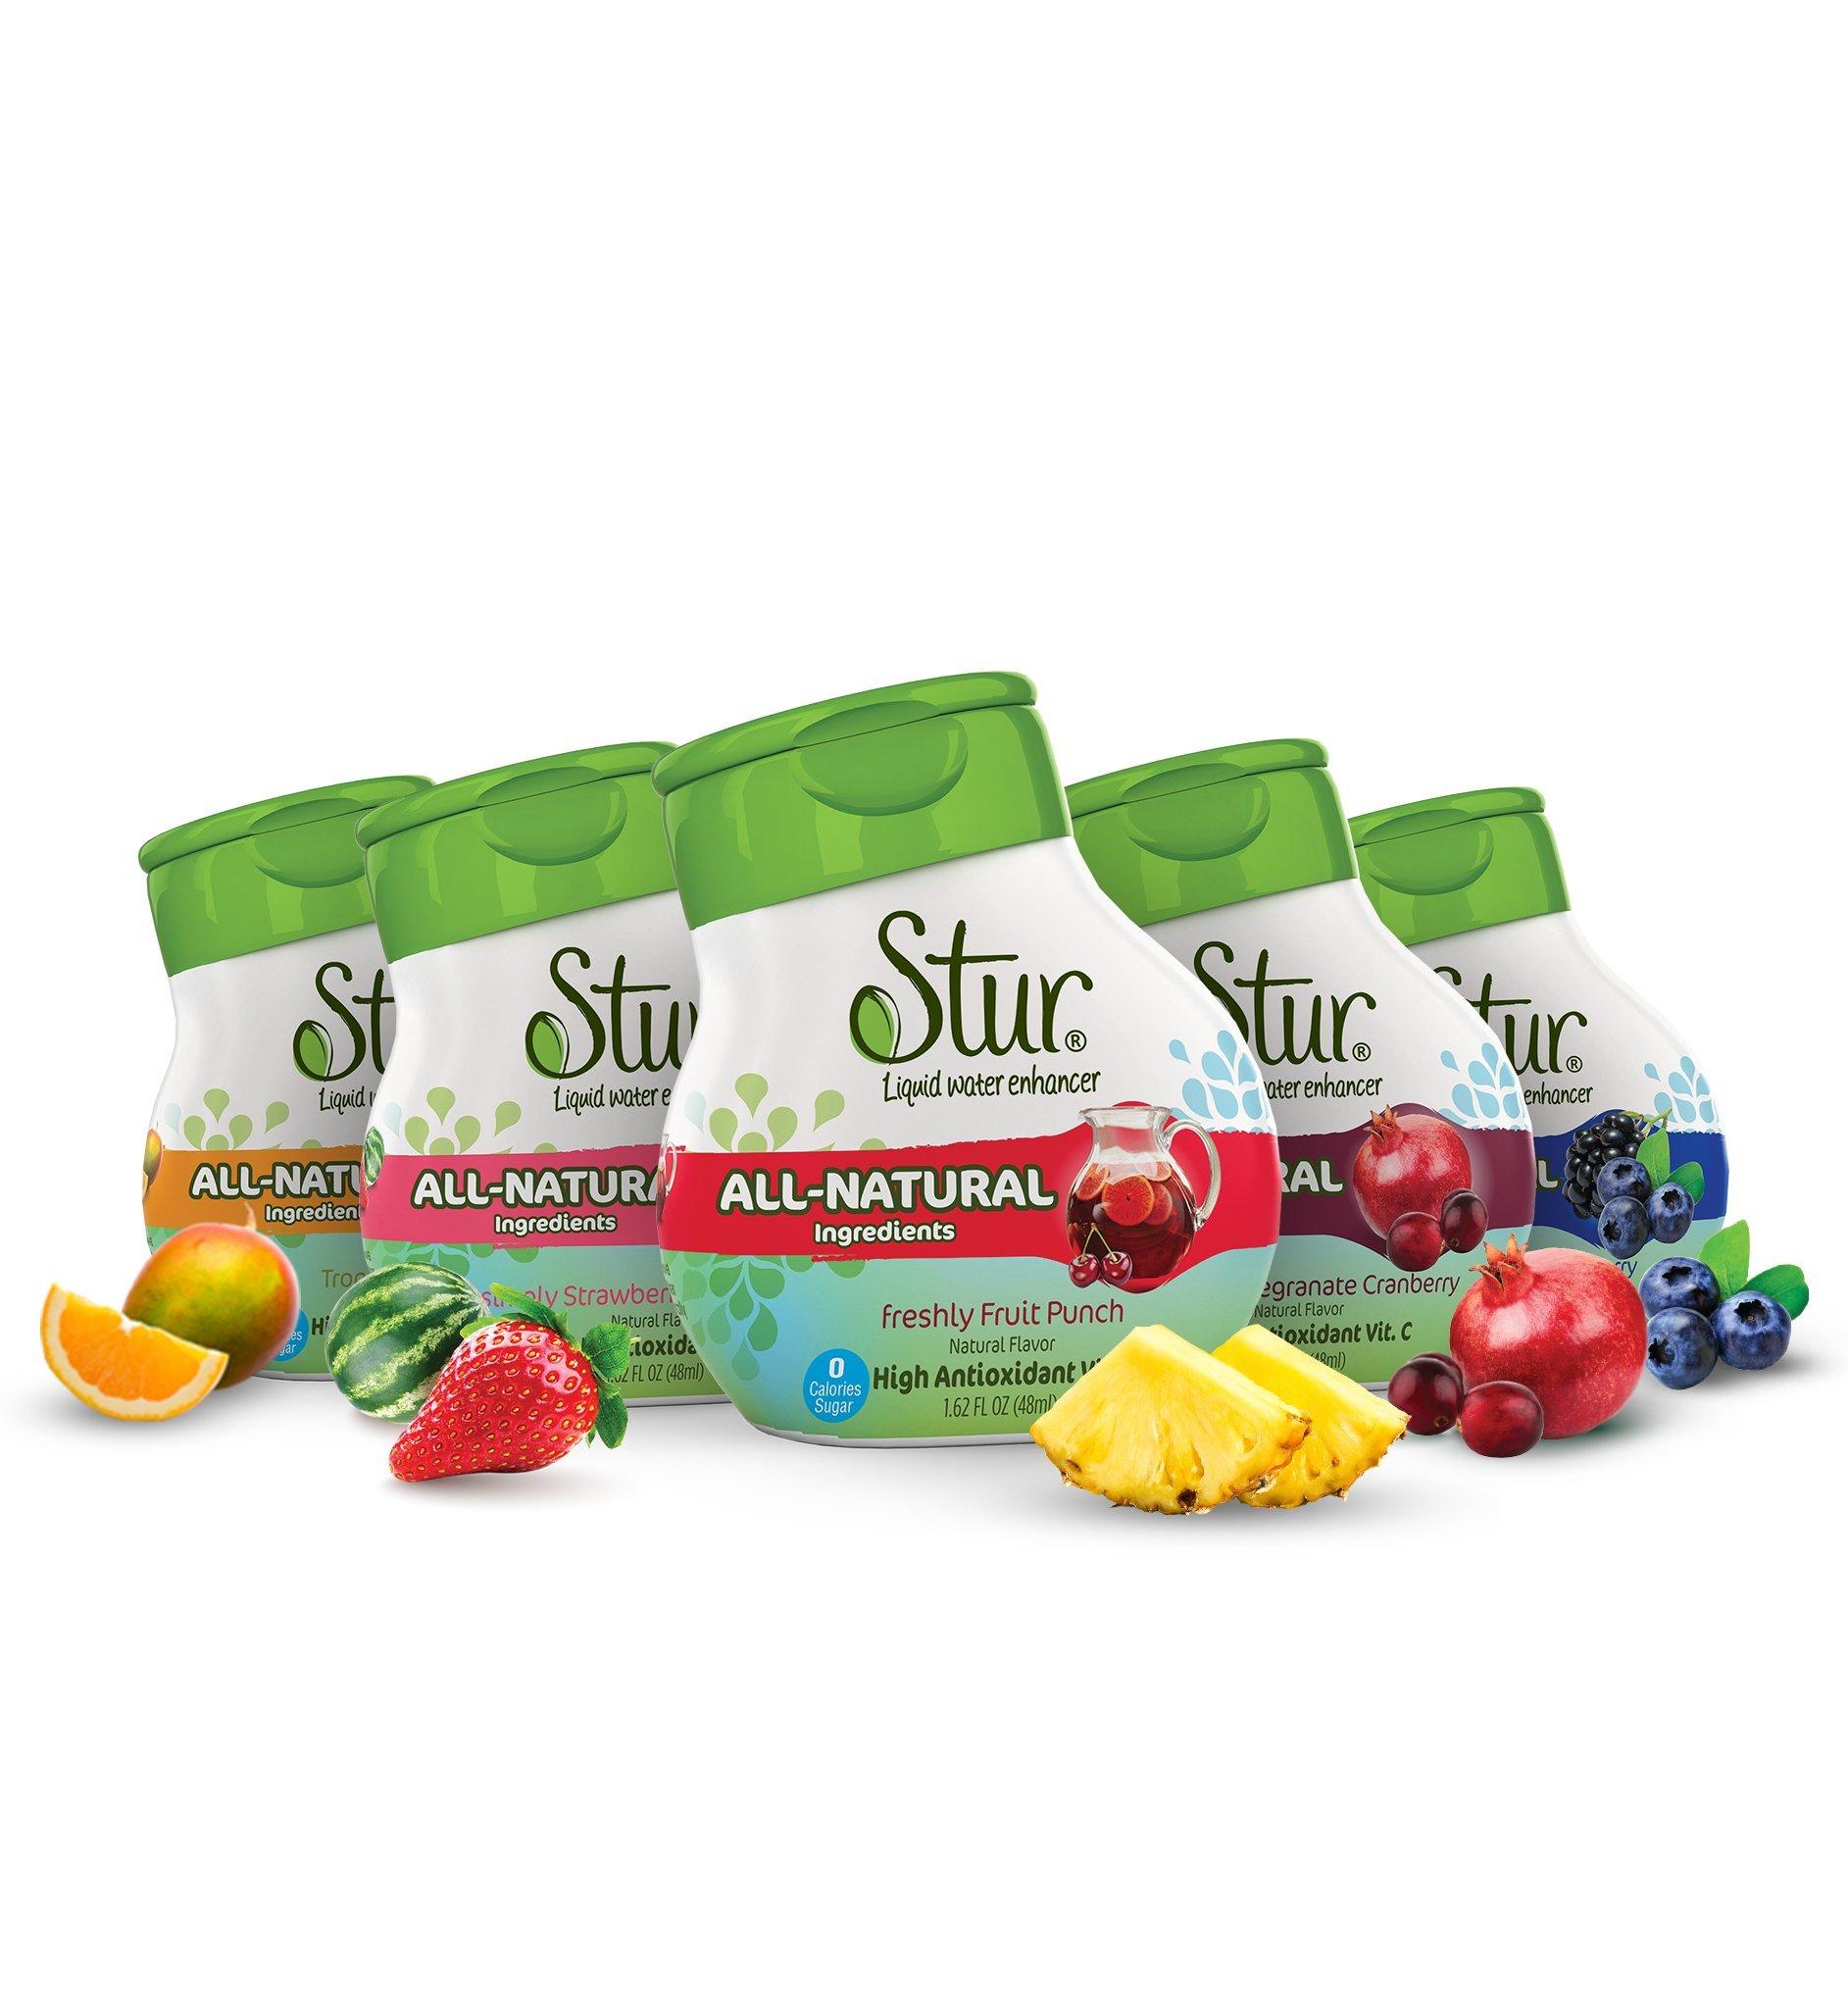 Stur Drinks - Variety Pack, Natural Water Enhancer, Liquid Drink Mix, Sugar Free, Zero Calorie, Vitamin C, Stevia, Make Your Own Fruit Infused Flavored Waters, Makes 100 Drinks